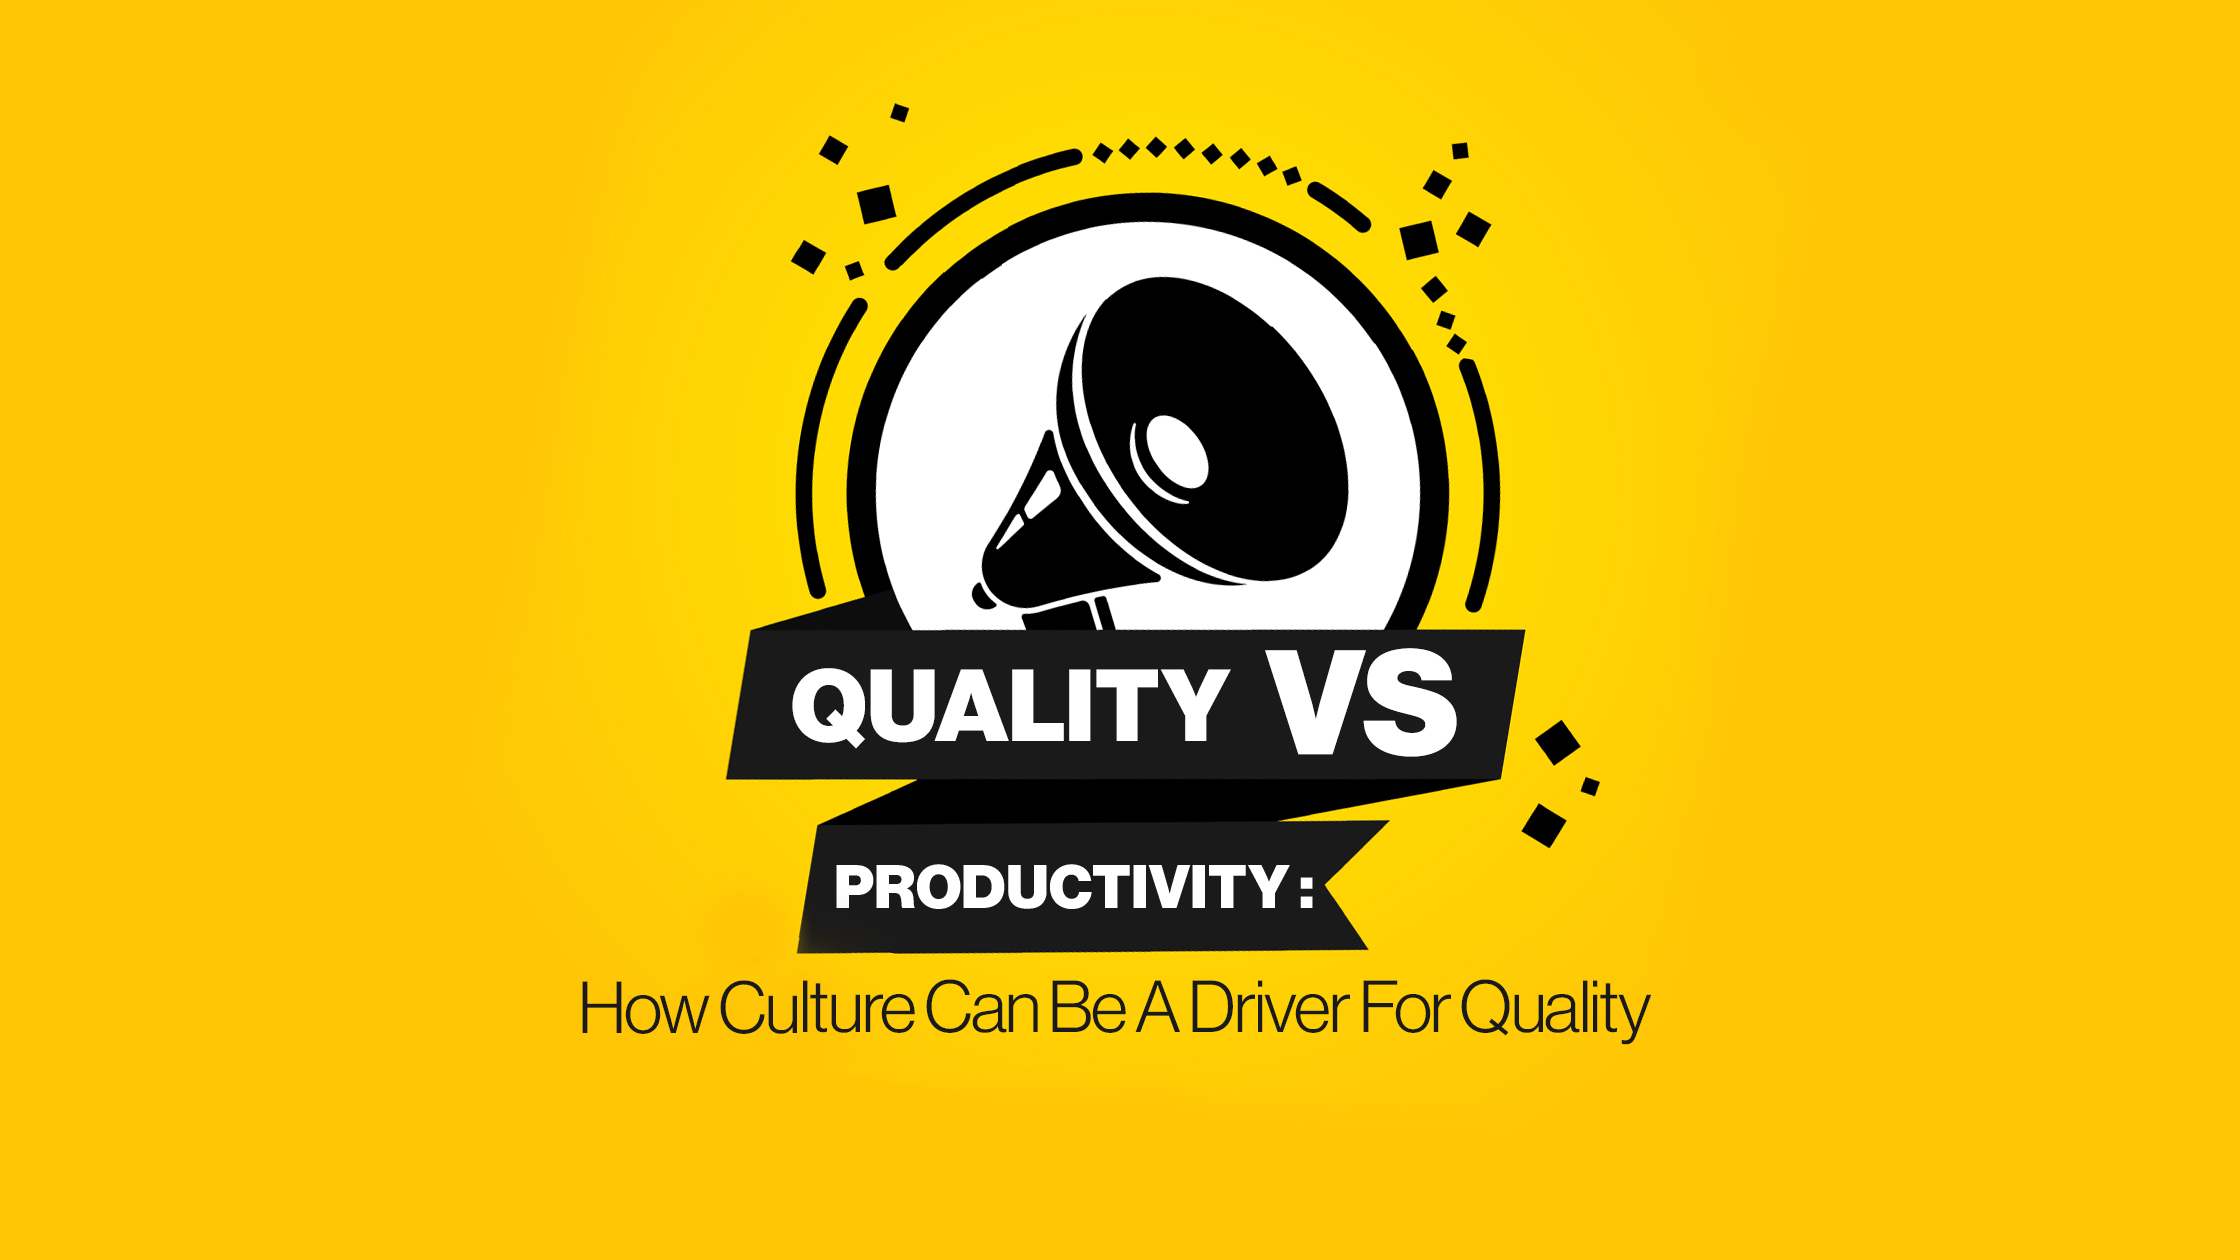 Quality and company culture